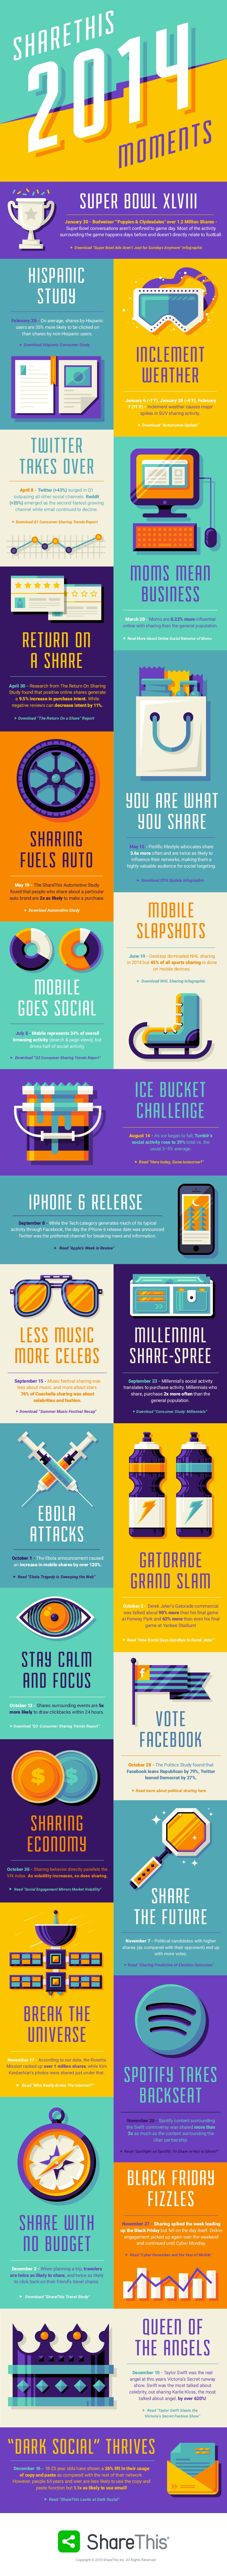 A Look Back At The 2014 #SocialMedia Sharing Trends - #infographic